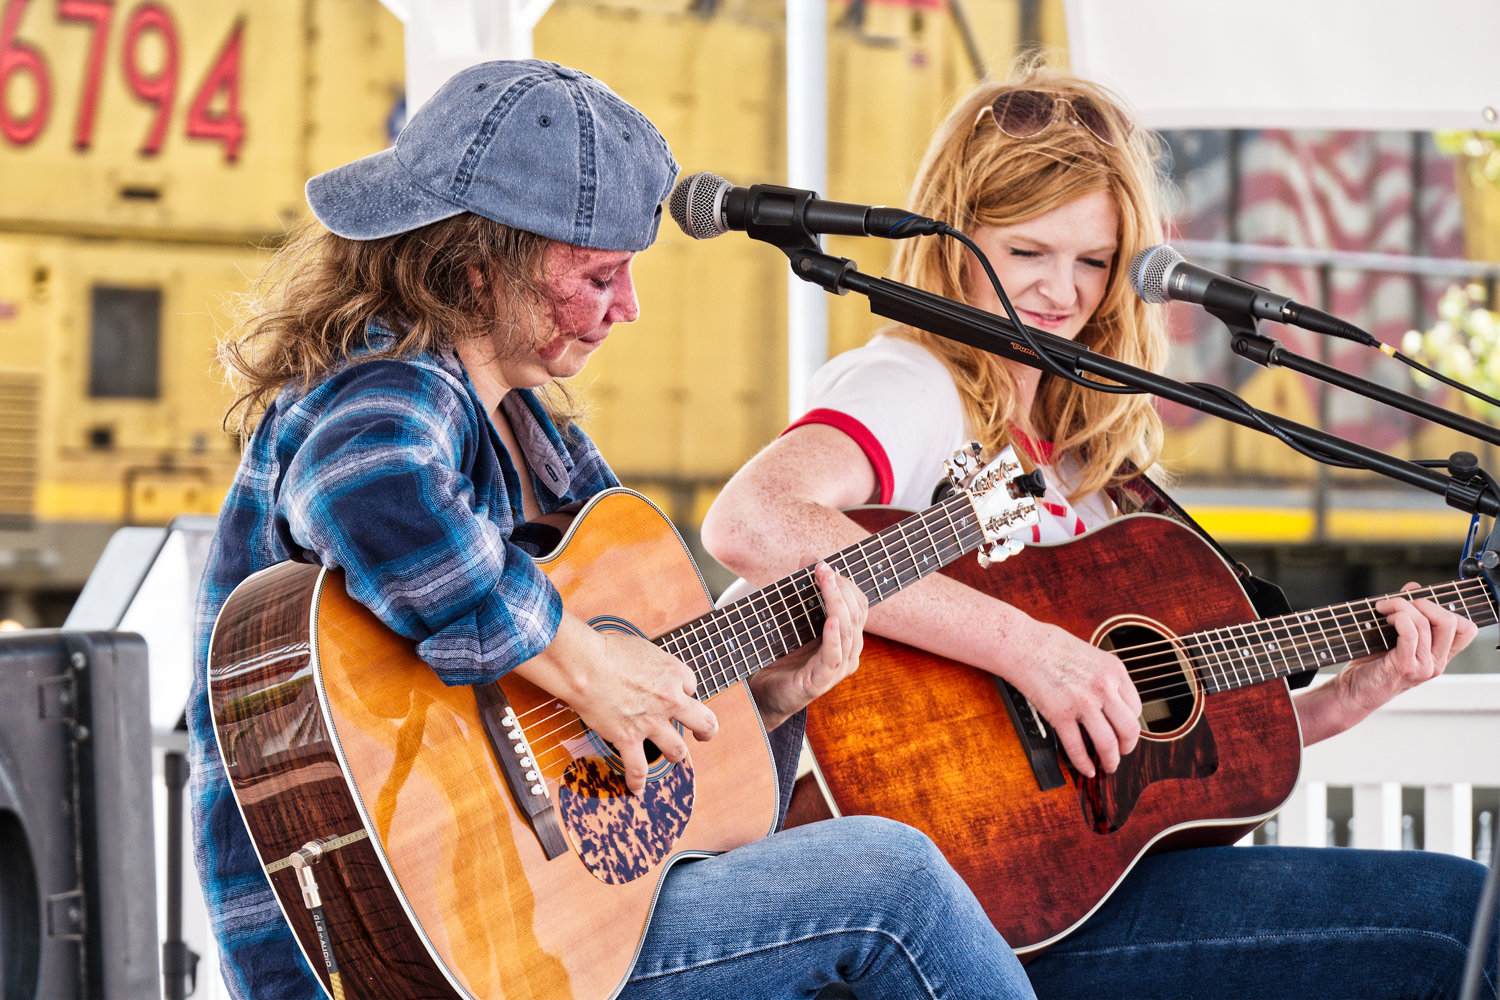 Heather Little and Meredith Crawford play as the Union Pacific train roars through the downtown area.